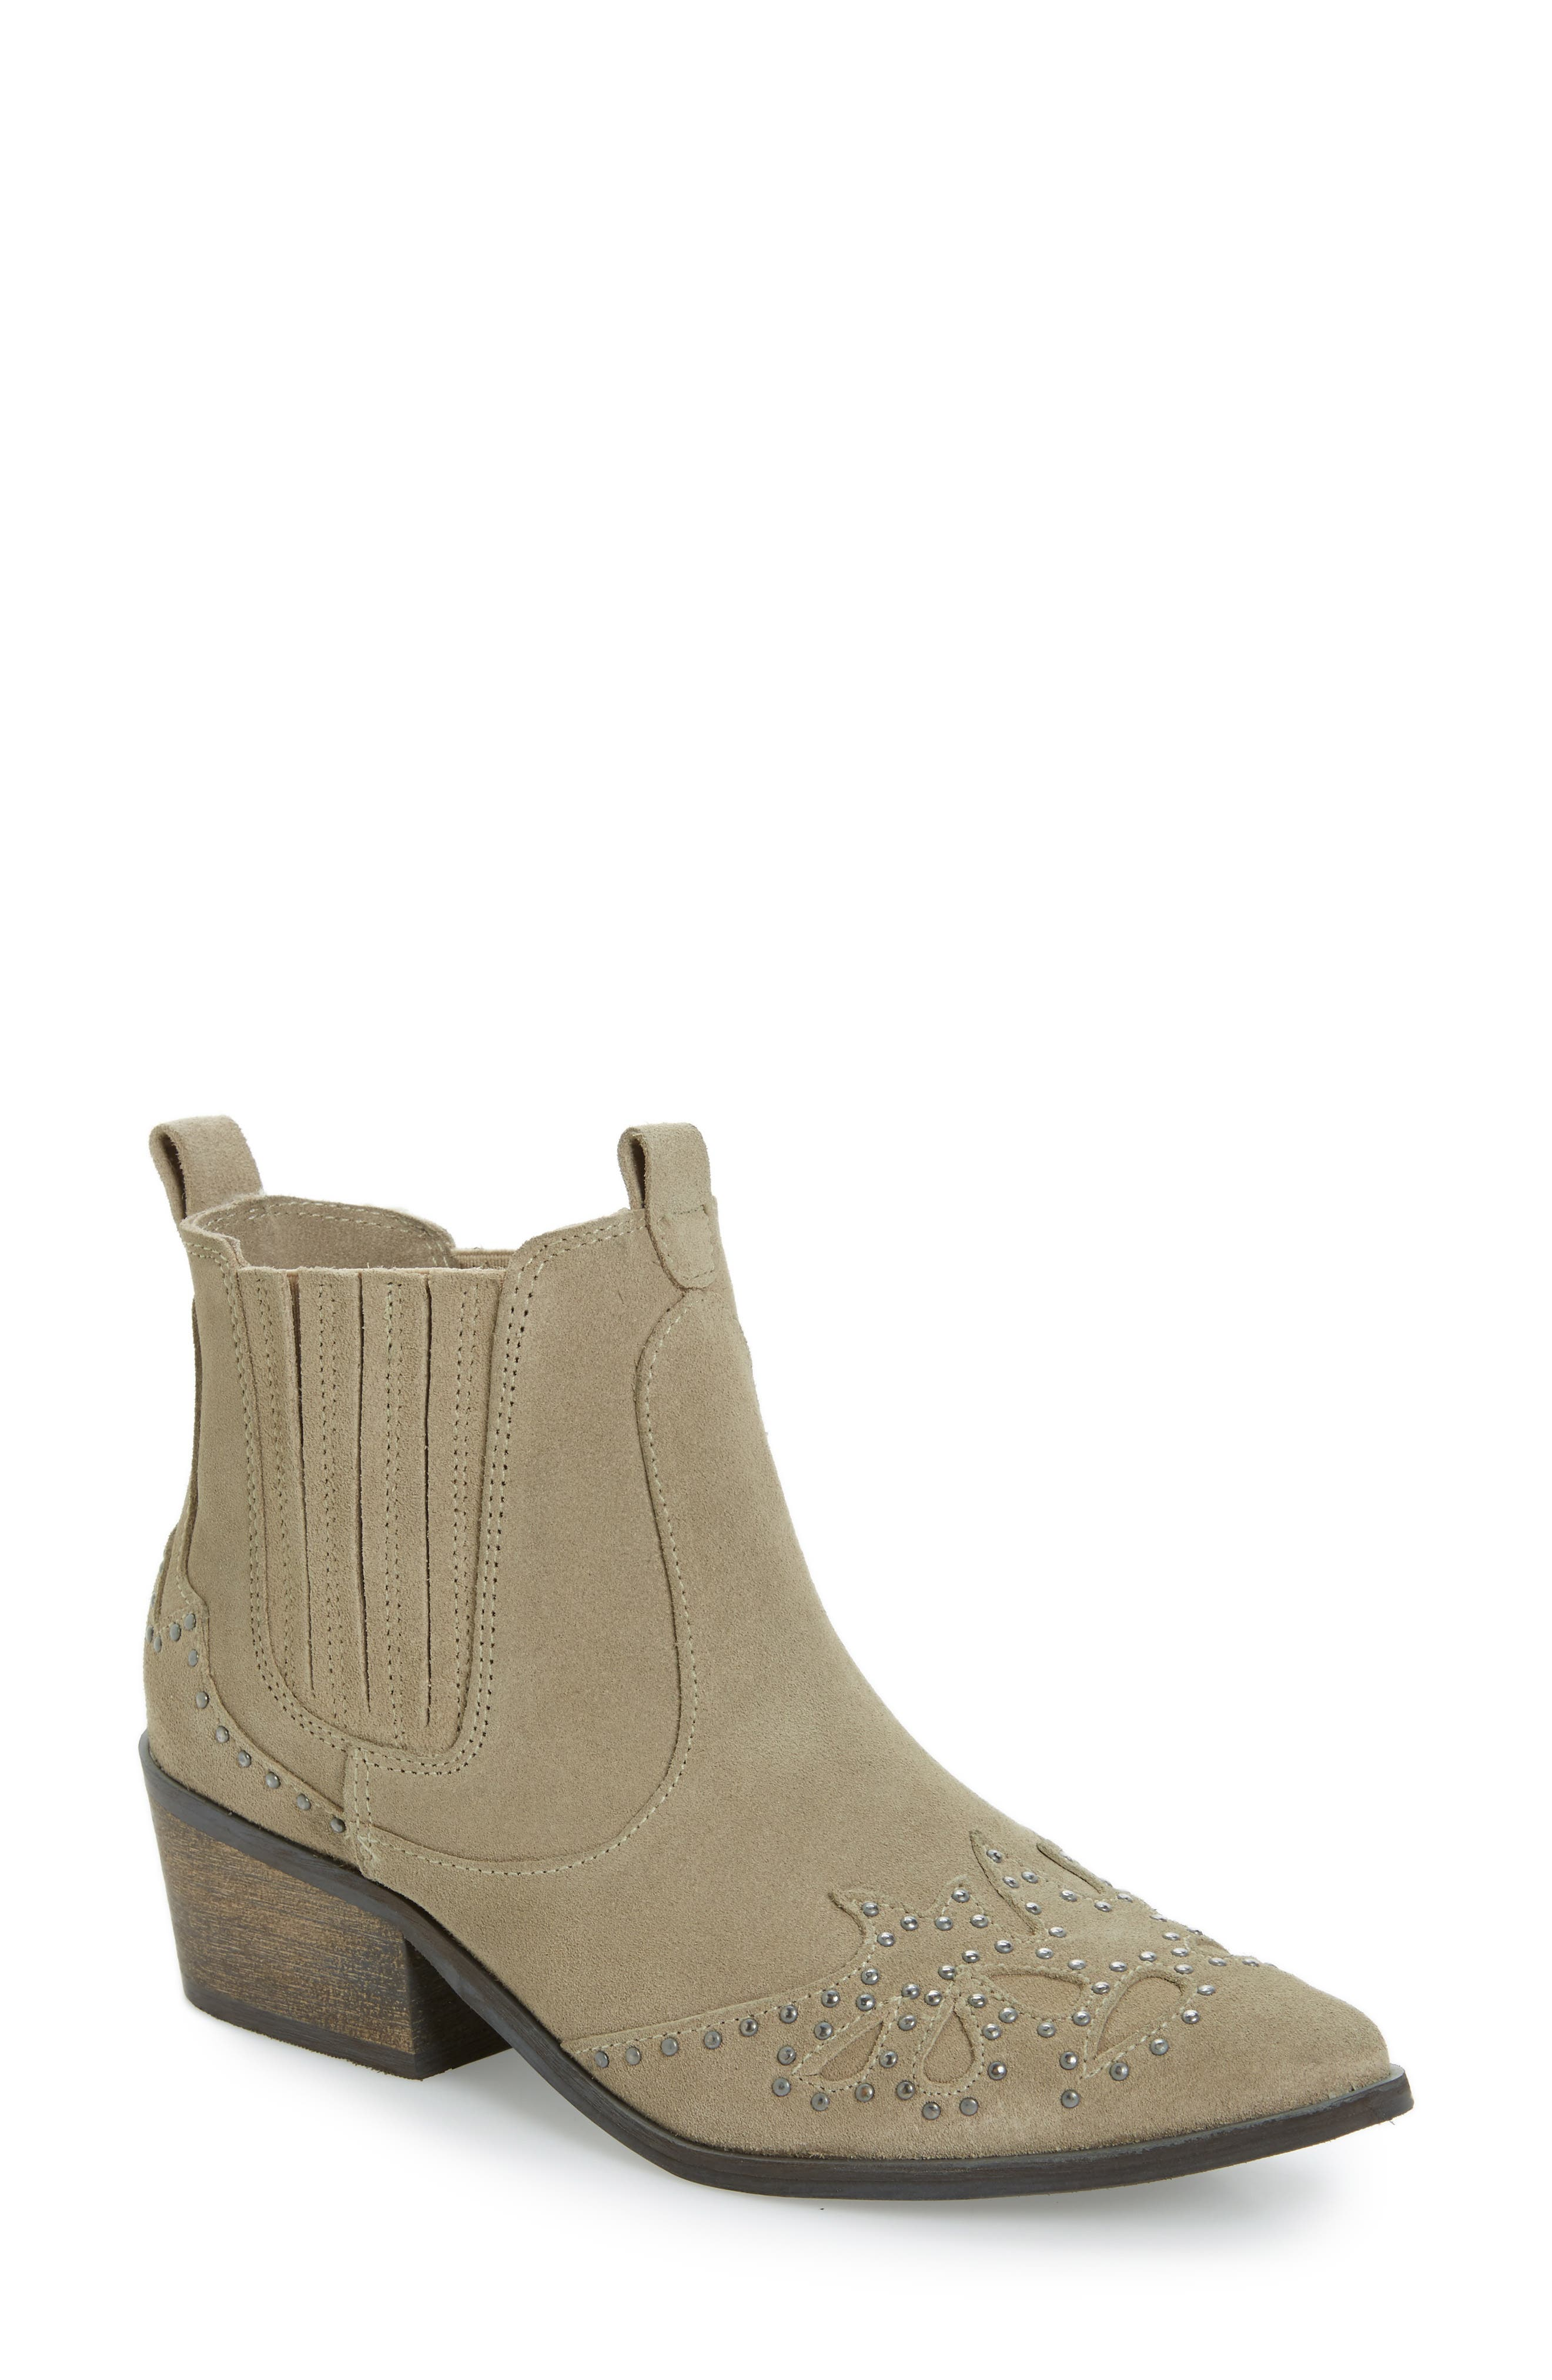 Backstage Bootie,                         Main,                         color, Taupe Leather